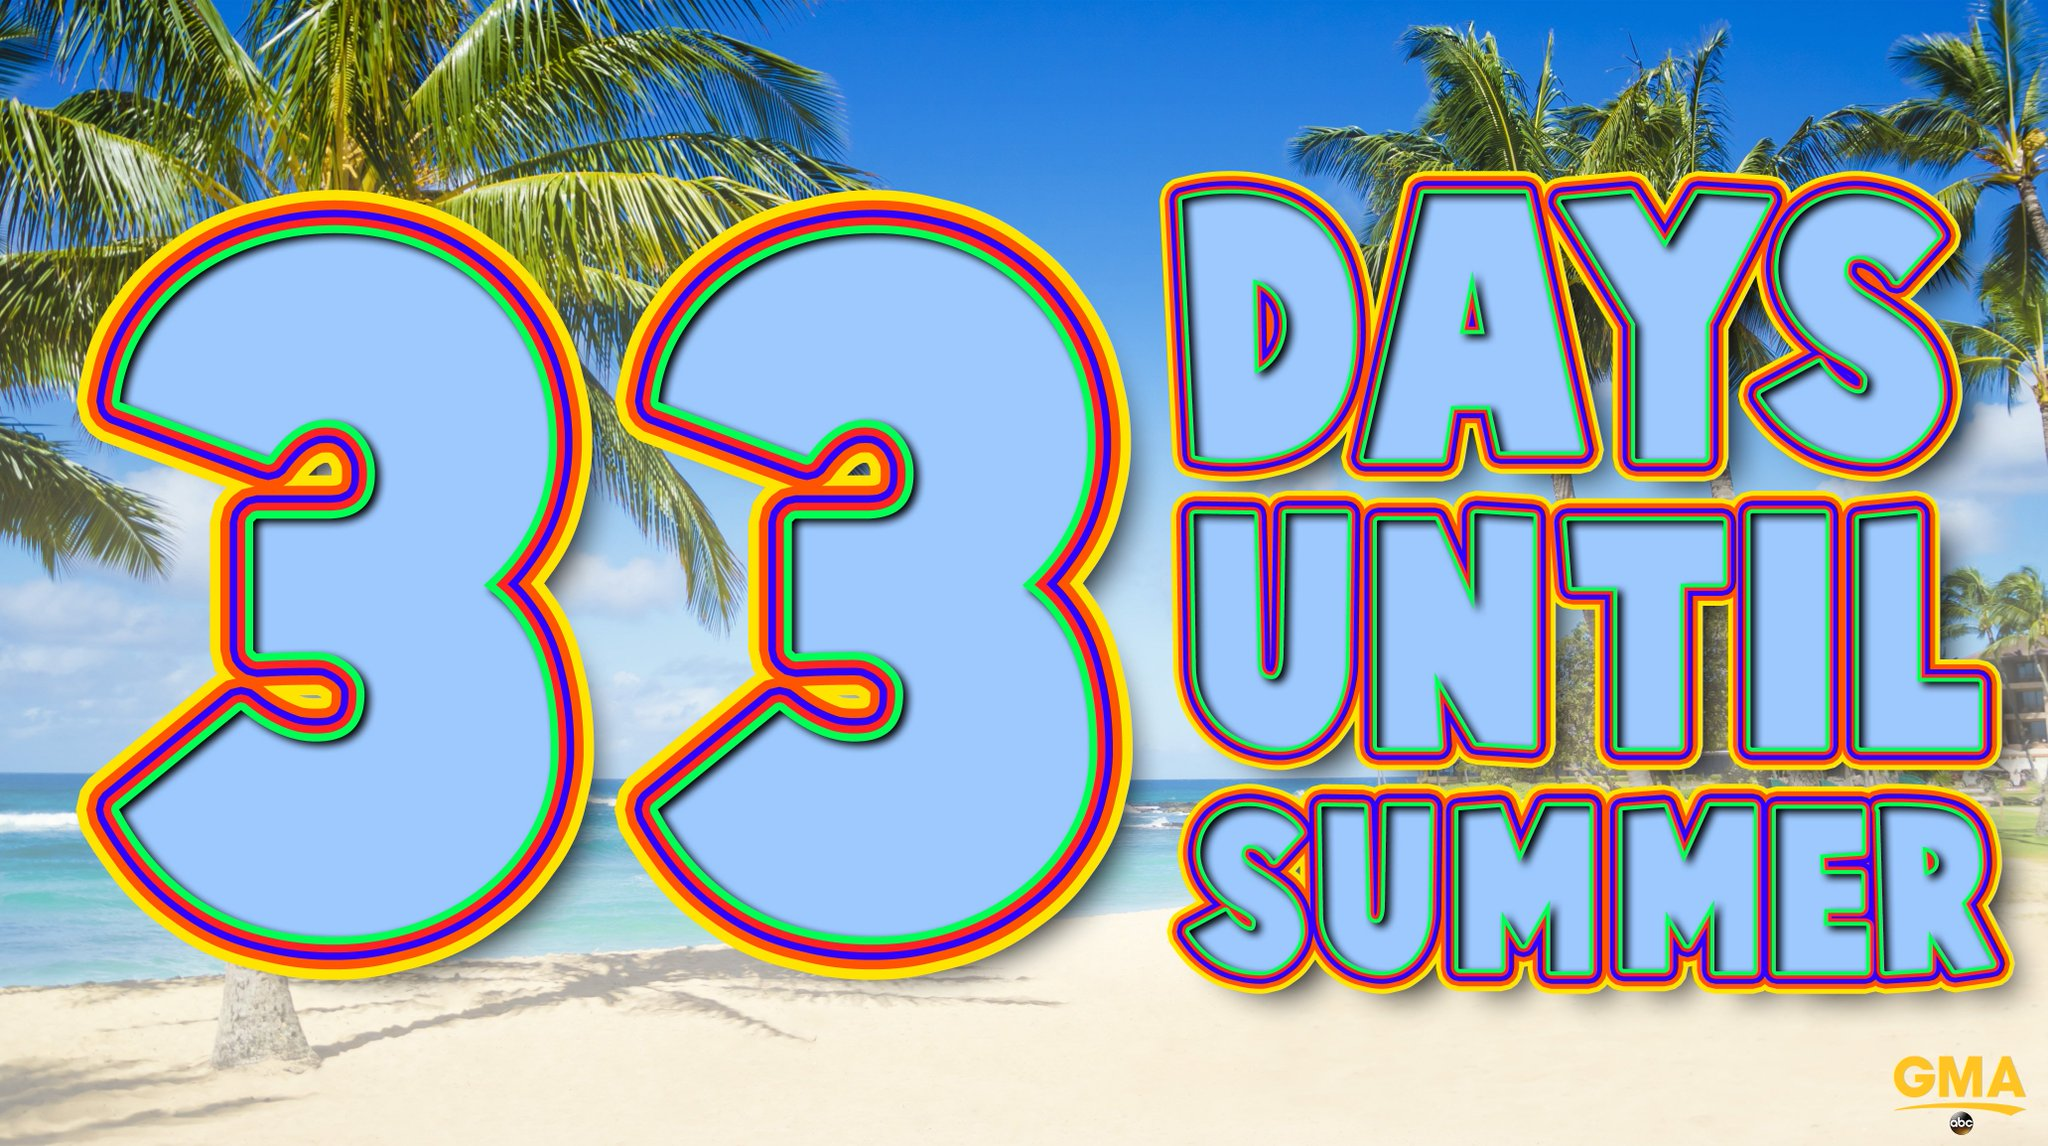 33 days until SUMMER! �� ☀️ https://t.co/evPM2L1tdJ